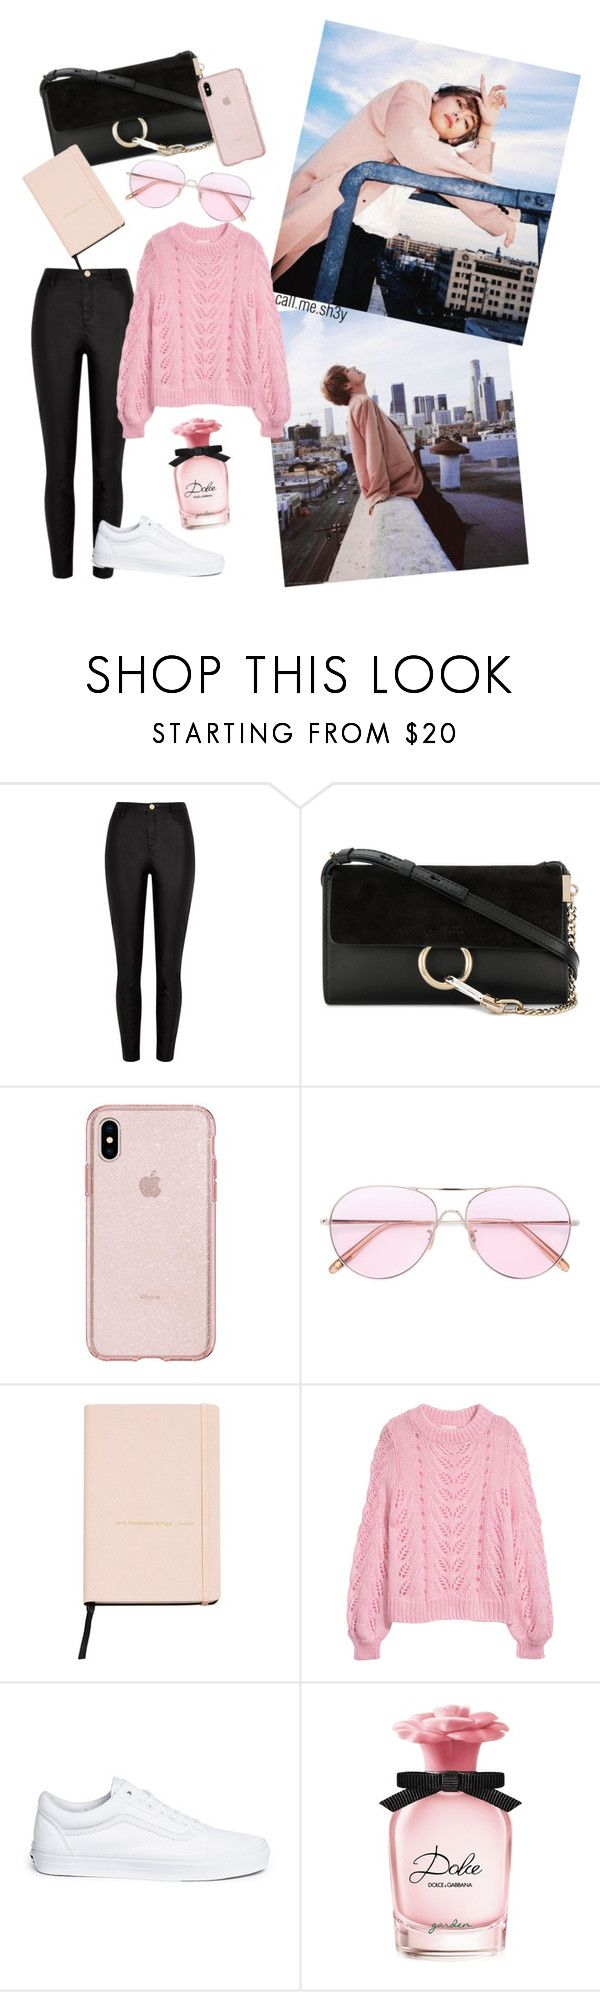 """""""Pastel Pink Dispatch"""" by call-me-shey ❤ liked on Polyvore featuring Chloé, Oliver Peoples, MANGO, Vans and Dolce&Gabbana"""